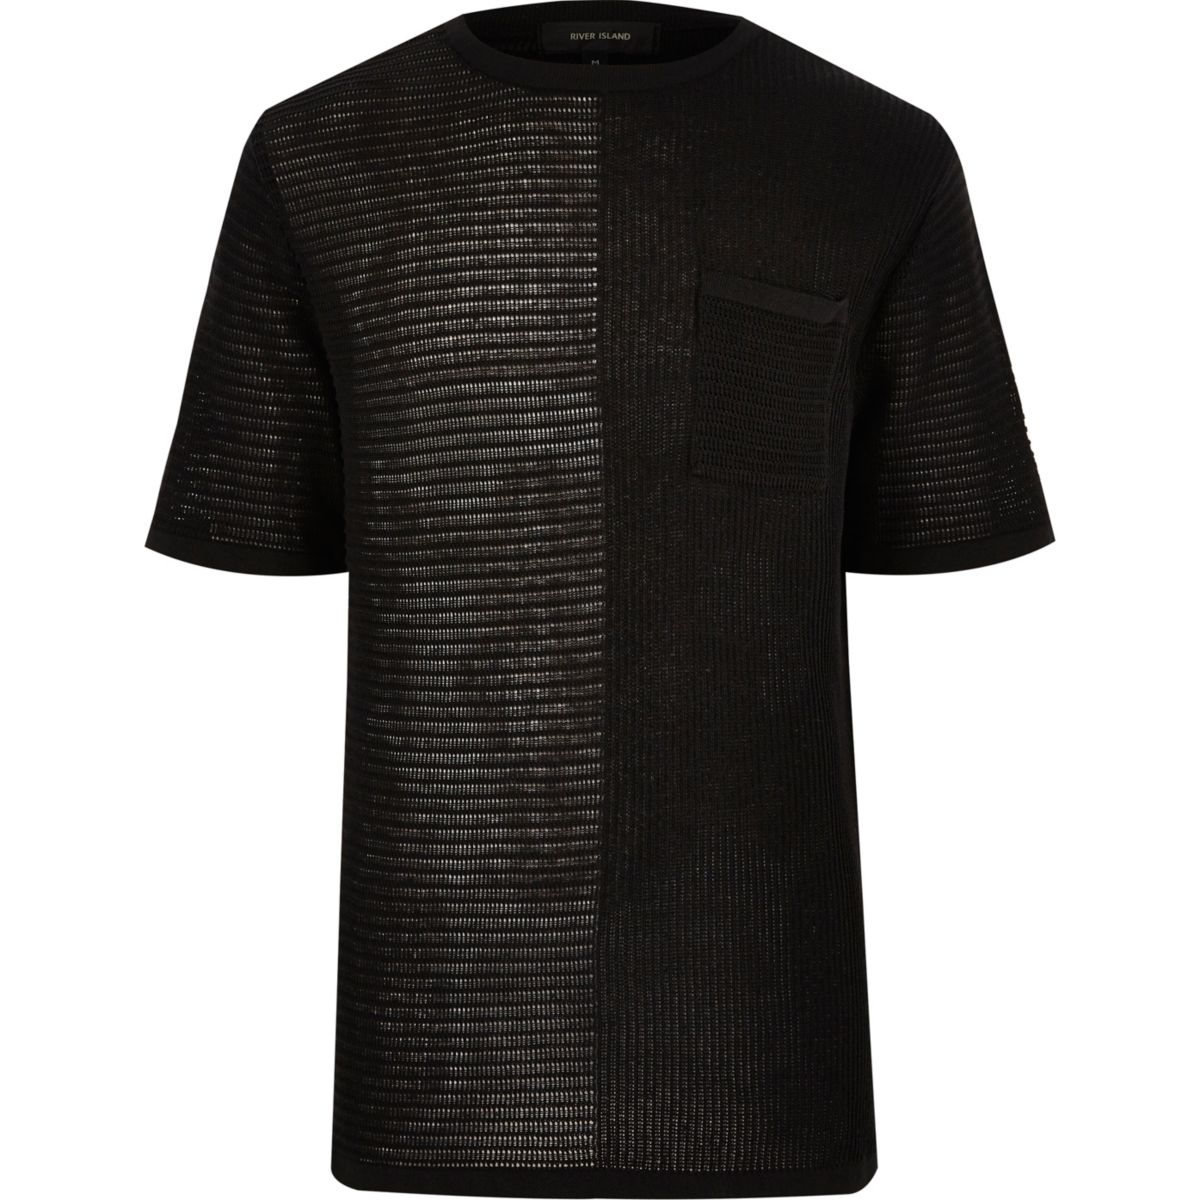 Black spliced knit mesh oversized T-shirt